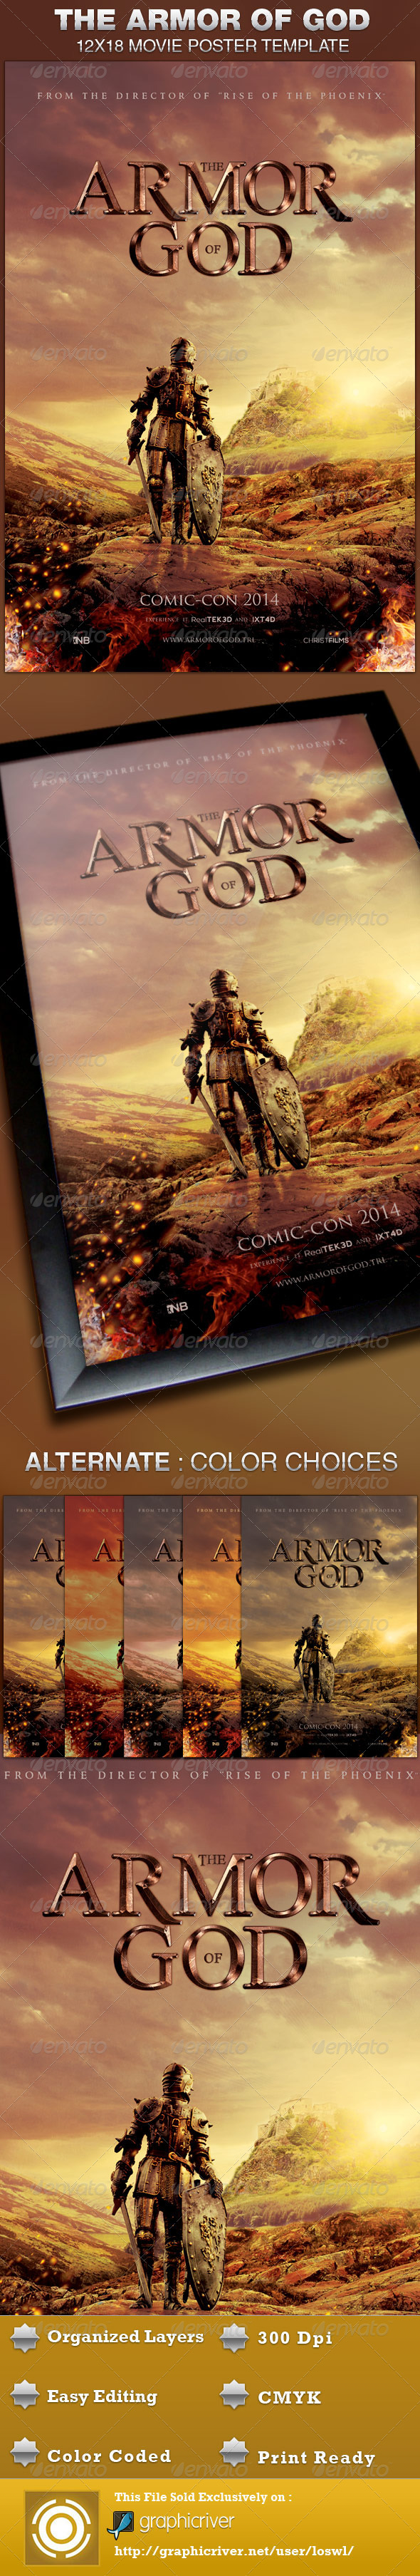 GraphicRiver Armor of God Movie Poster Template 4594947